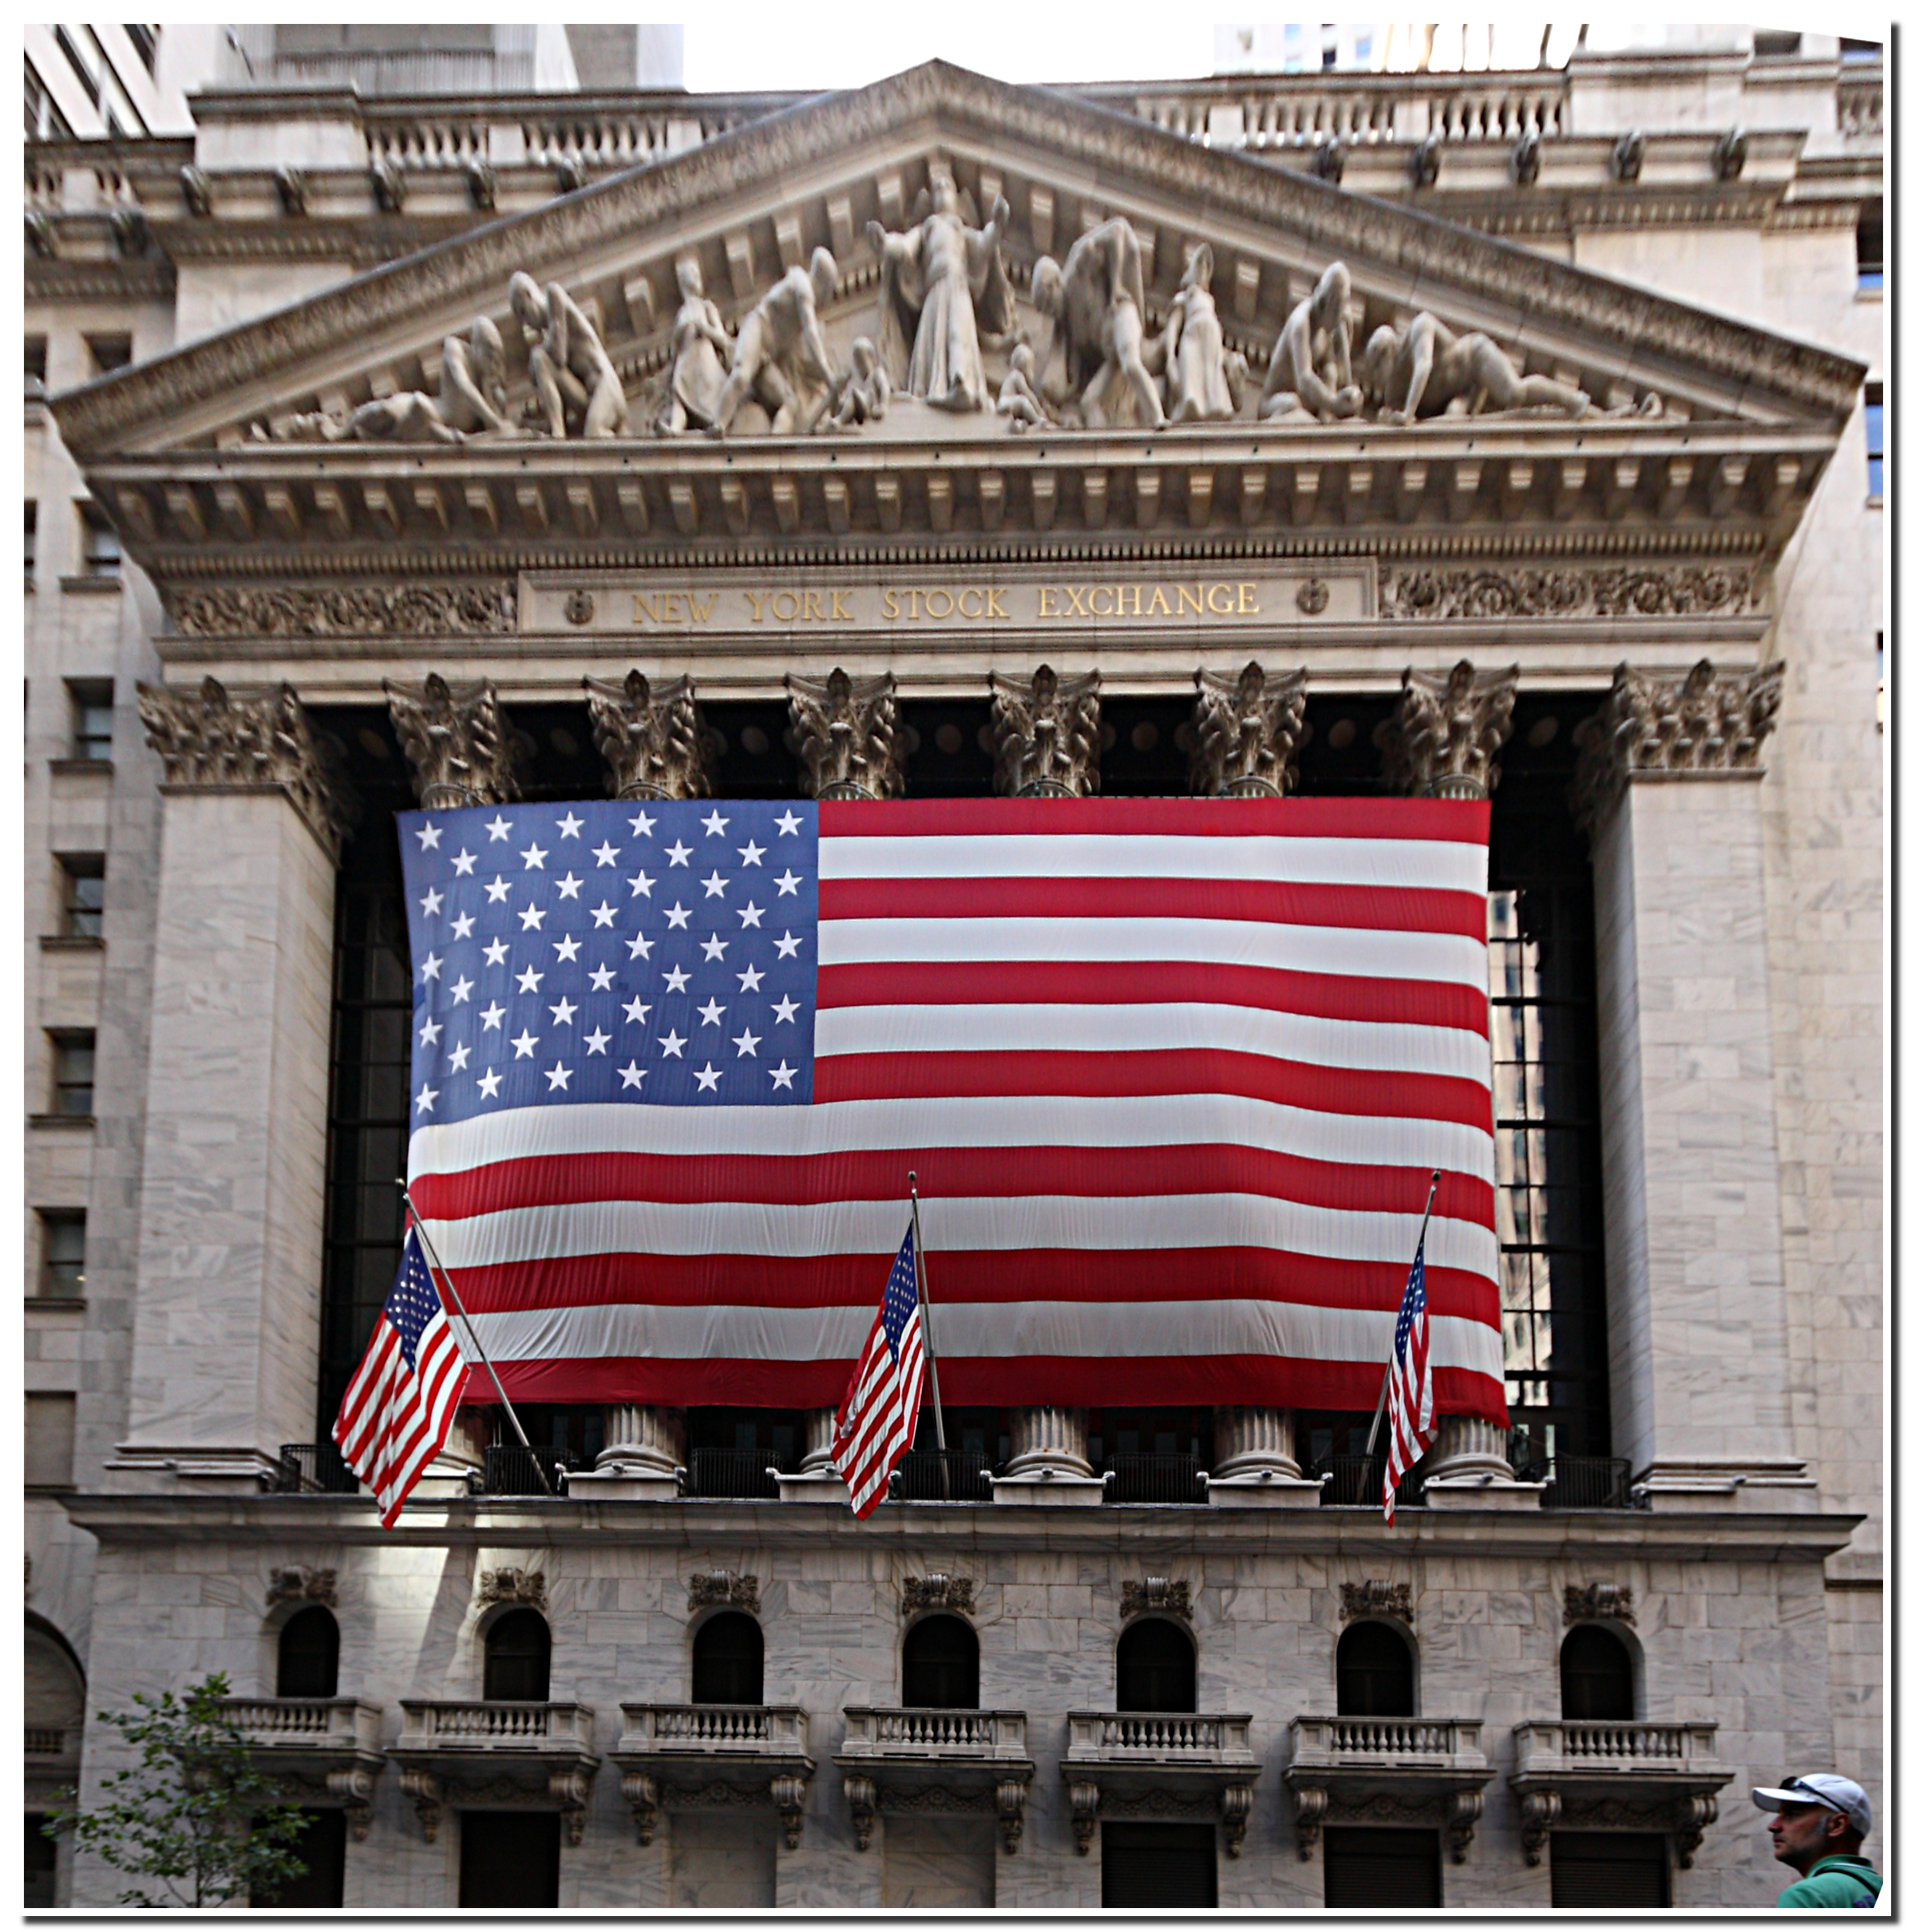 Stock Photos Images Stock exchange